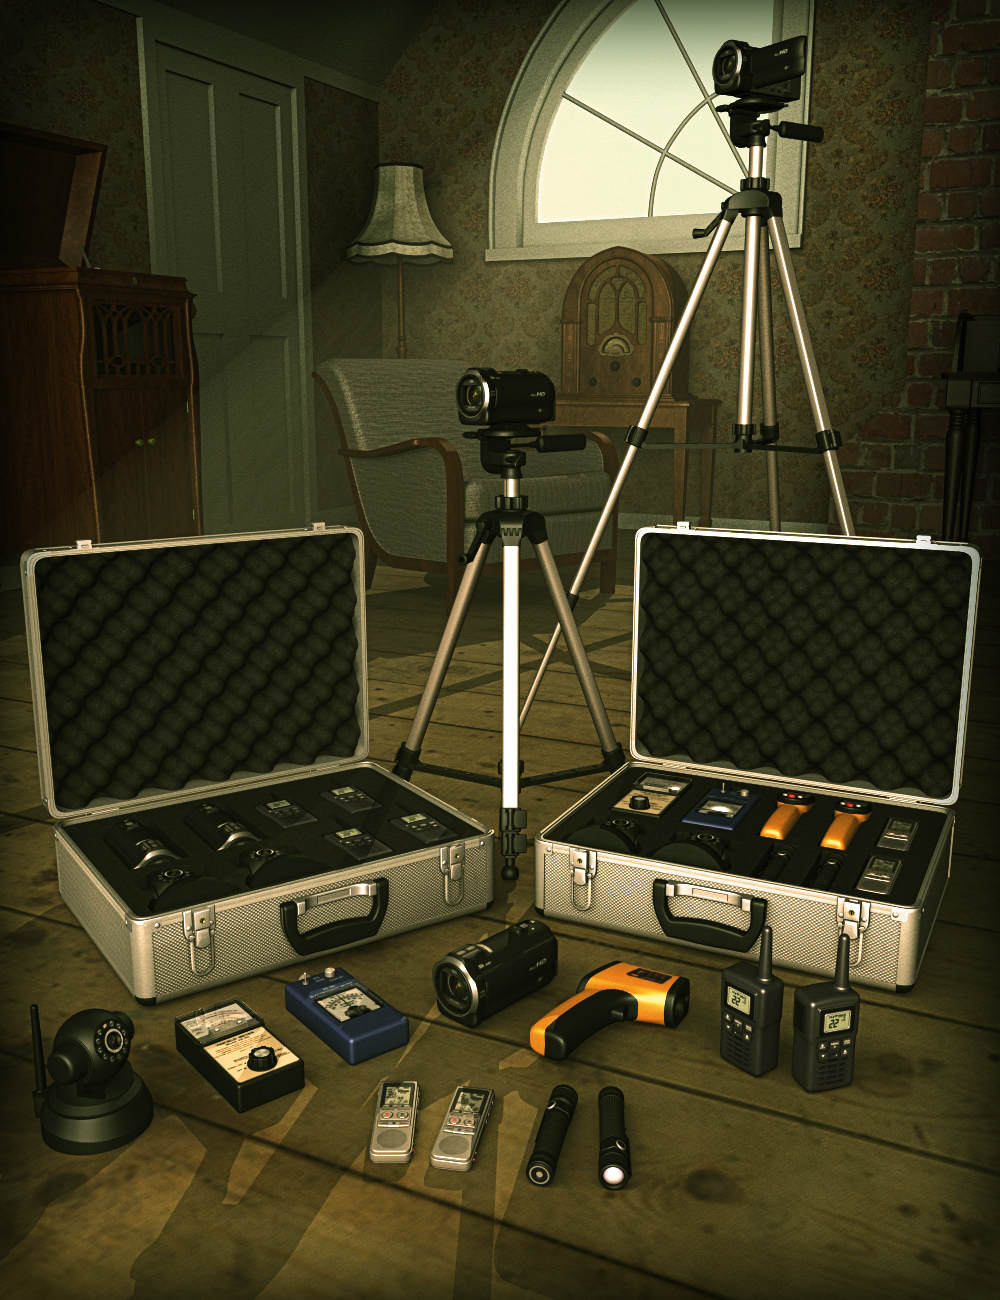 Ghost Hunter Equipment by: hypnagogia, 3D Models by Daz 3D